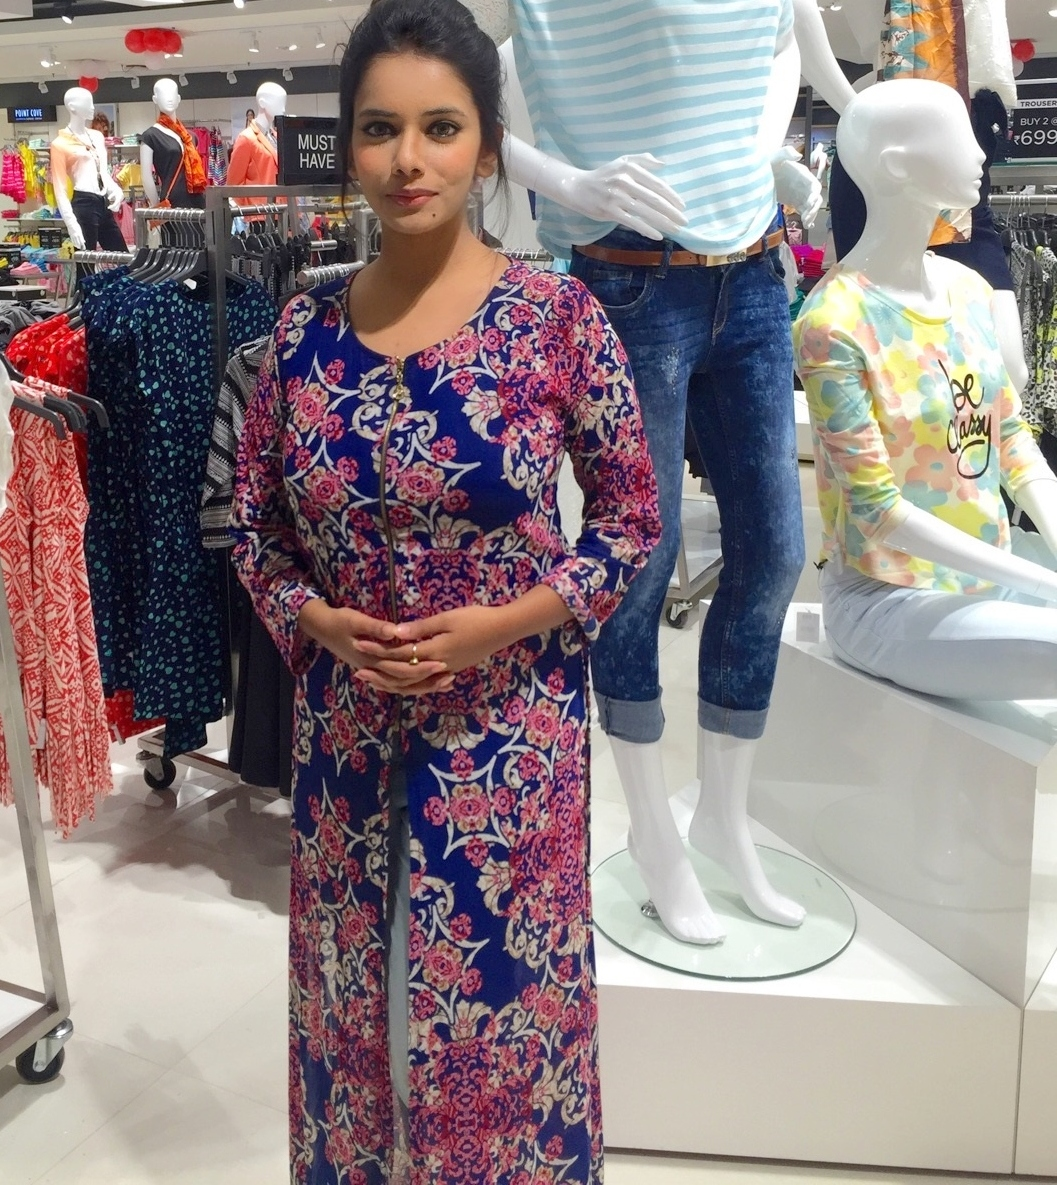 reliance trends store ritwika gupta